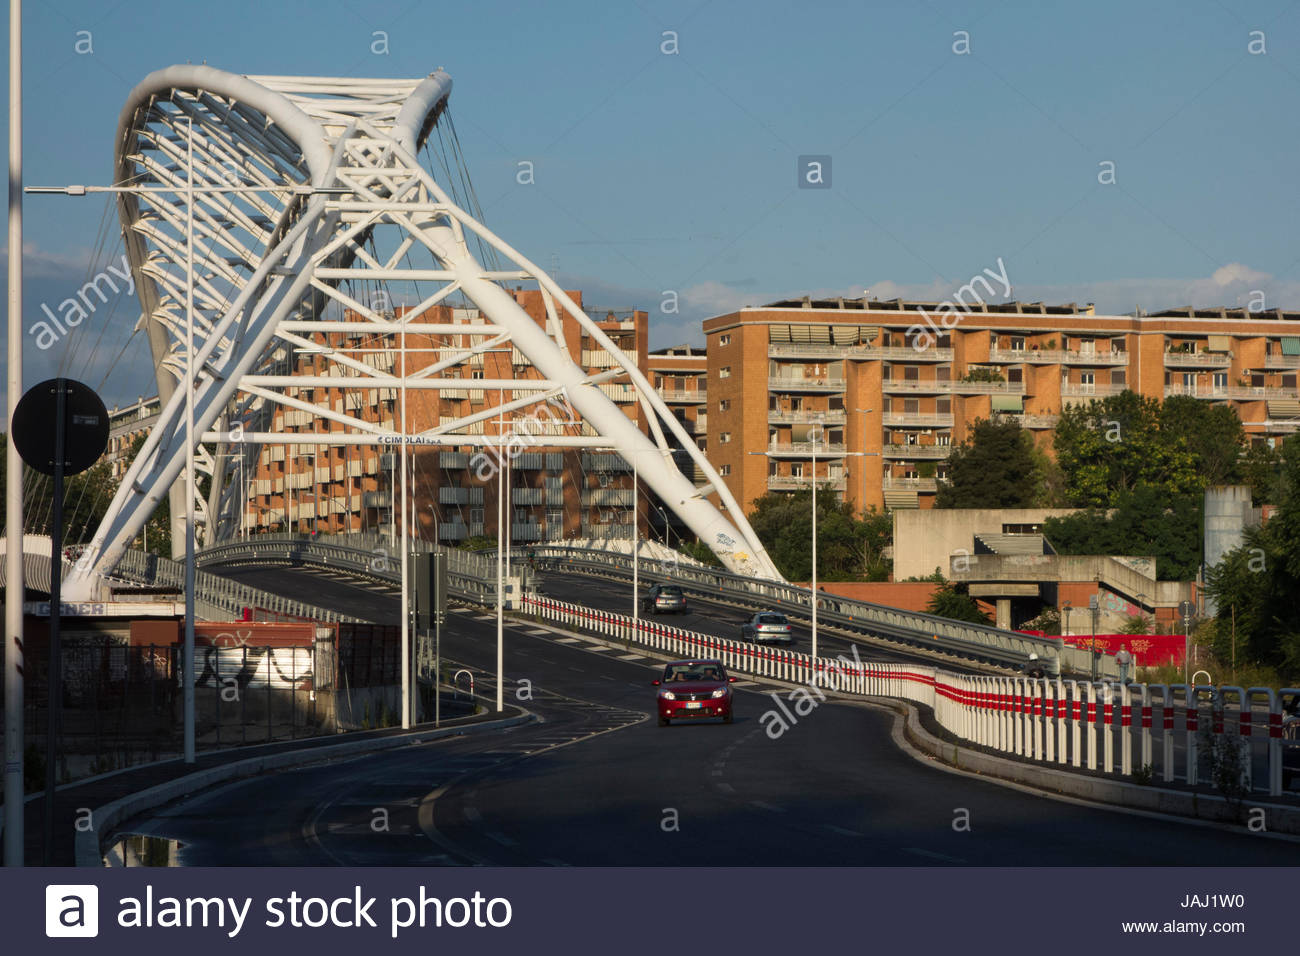 The Garbatella Cobra Bridge in the Ostiense section of Rome, Italy. Stock Photo